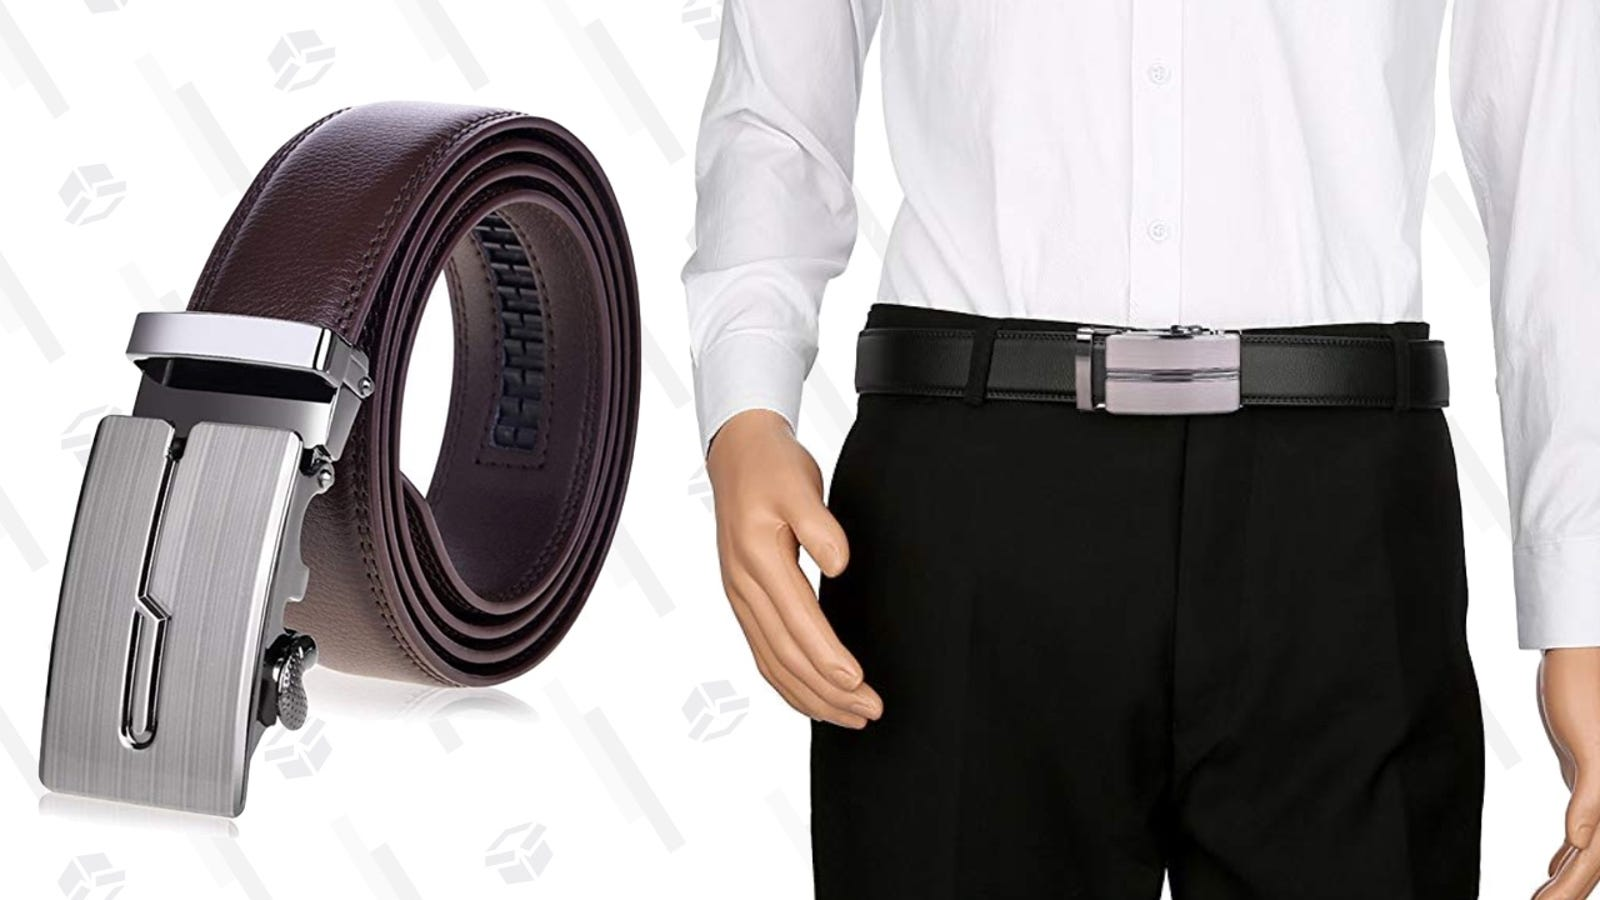 These $9 Belts Are Ratchet, But In A Good Way